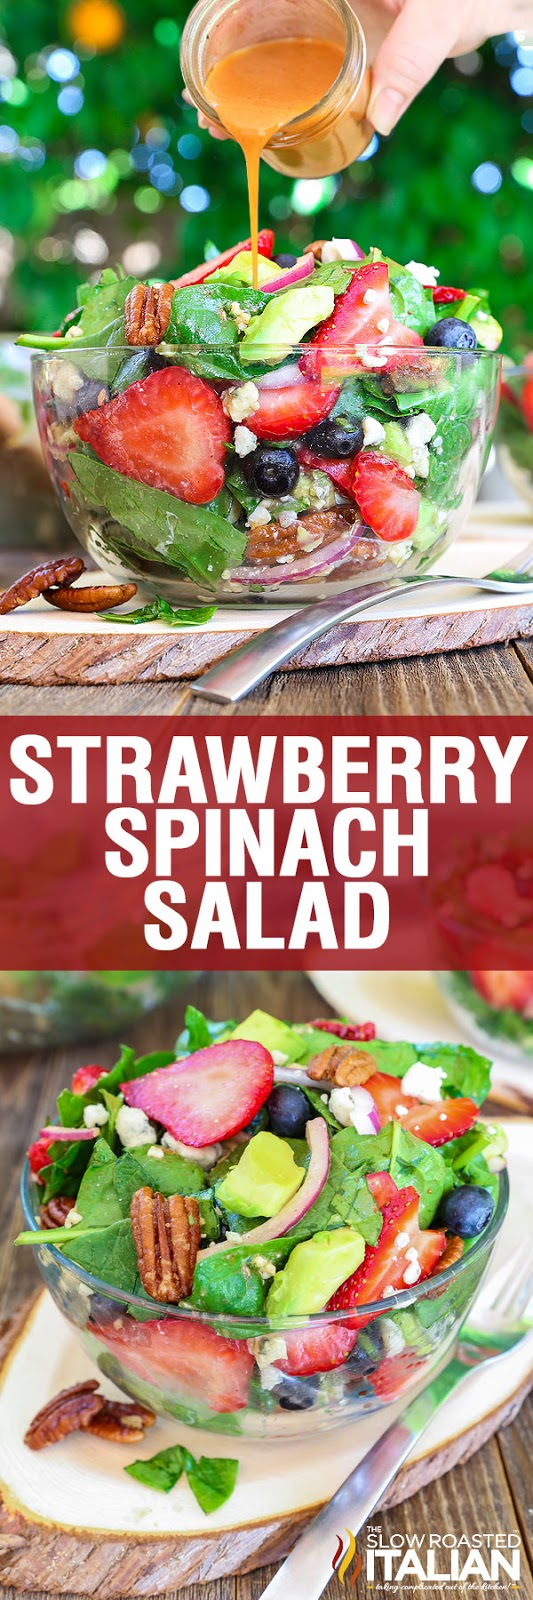 http://www.theslowroasteditalian.com/2016/05/best-ever-strawberry-spinach-salad-recipe.html